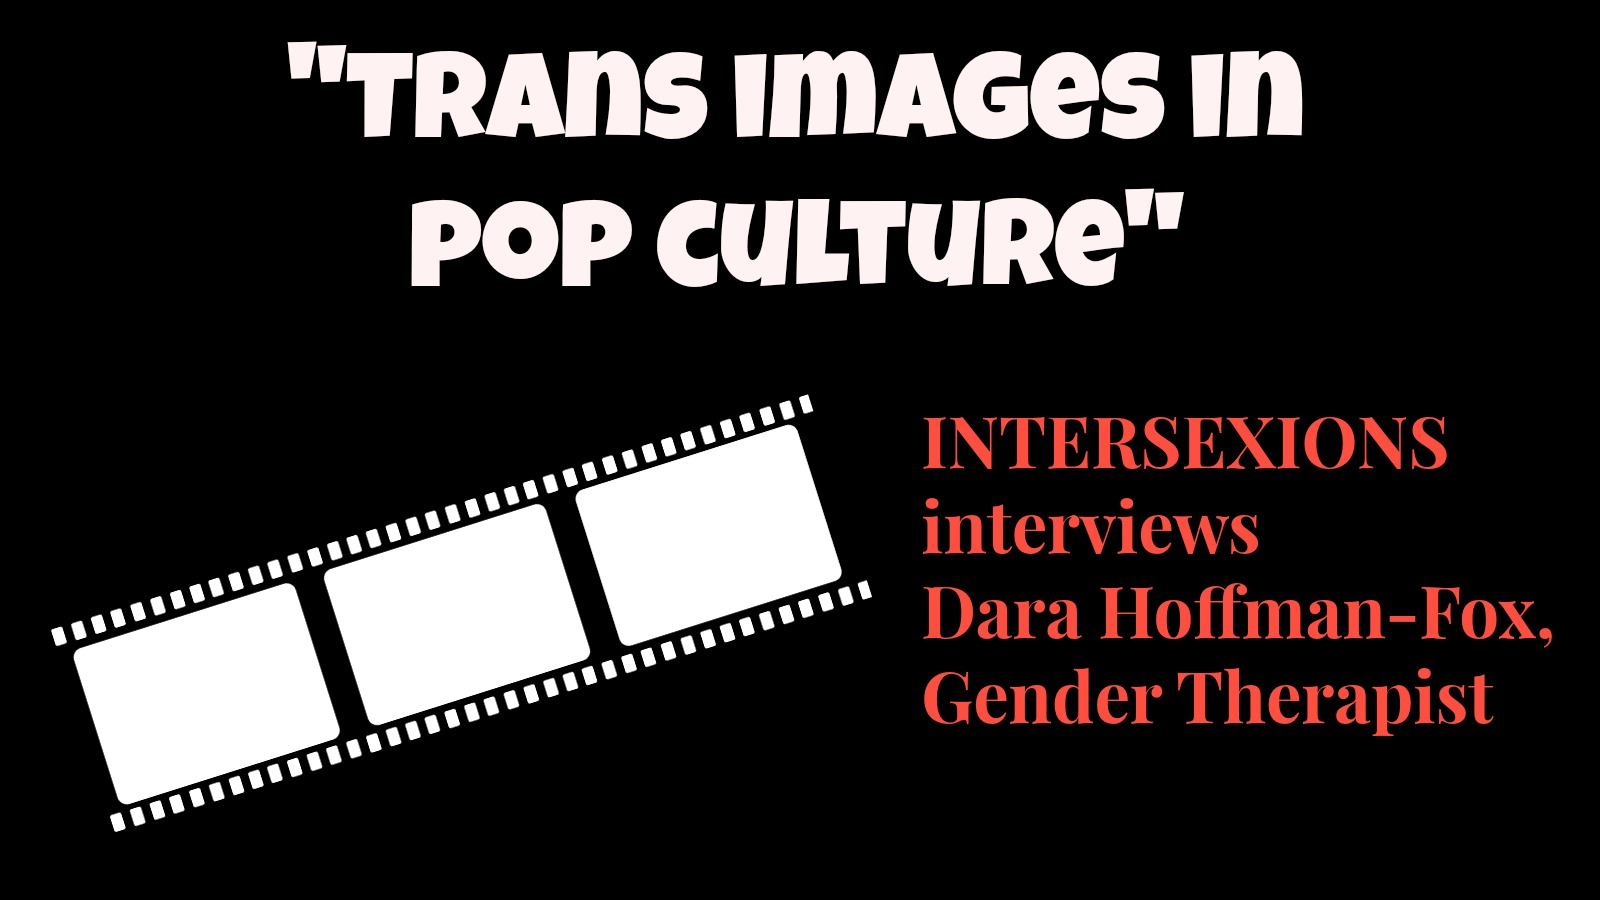 TransImagesinPopCulture